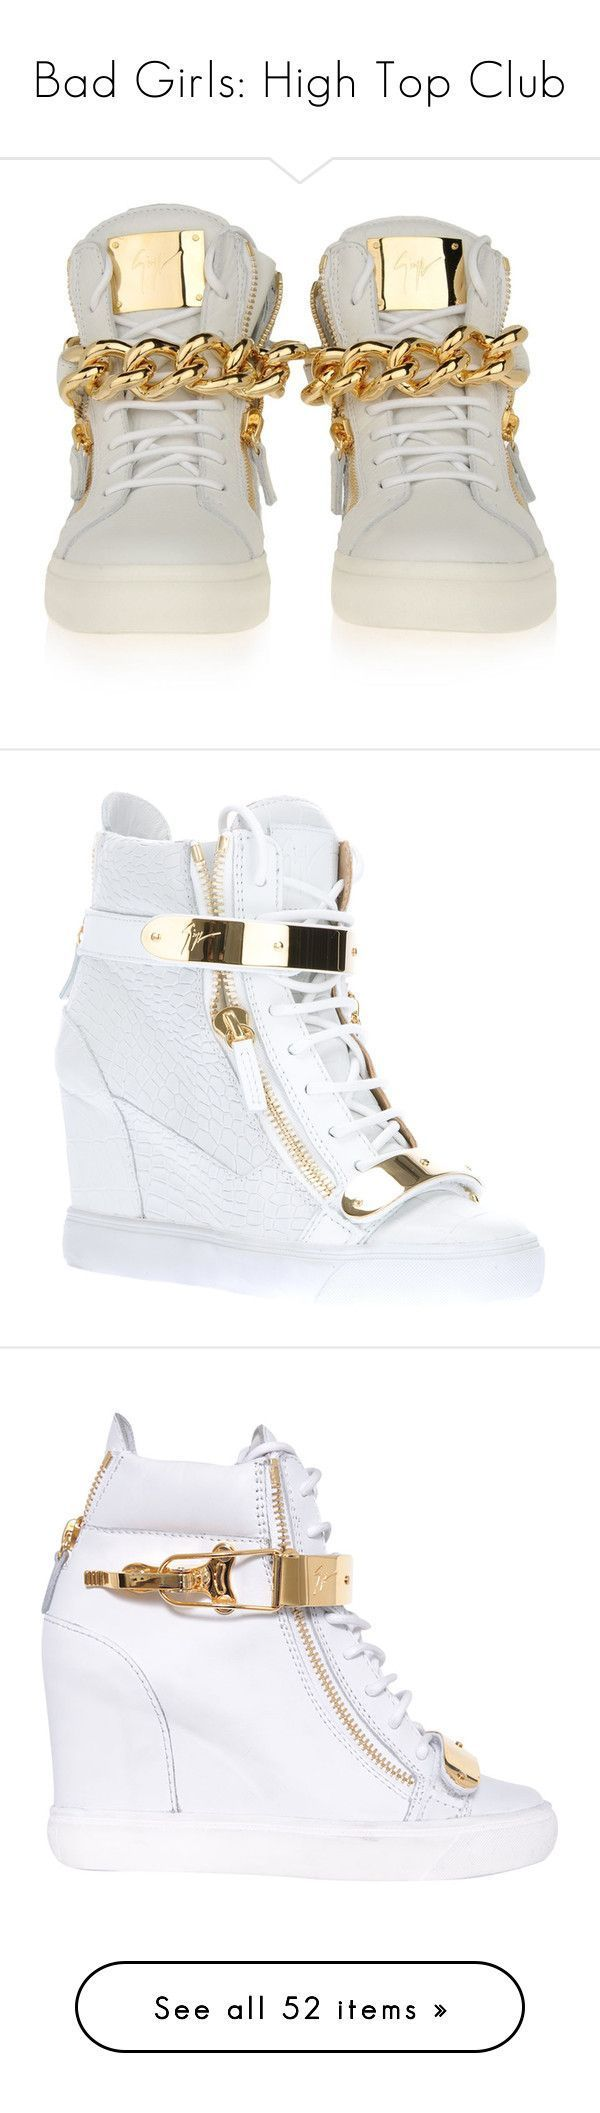 """""""Bad Girls: High Top Club"""" by jaiirie ❤ liked on Polyvore featuring shoes, sneakers, giuseppe zanotti, giuseppe zanotti sneakers, giuseppe zanotti trainers, giuseppe zanotti shoes, heels, white, leather wedge sneakers and white sneakers #giuseppezanottiheelswhite"""